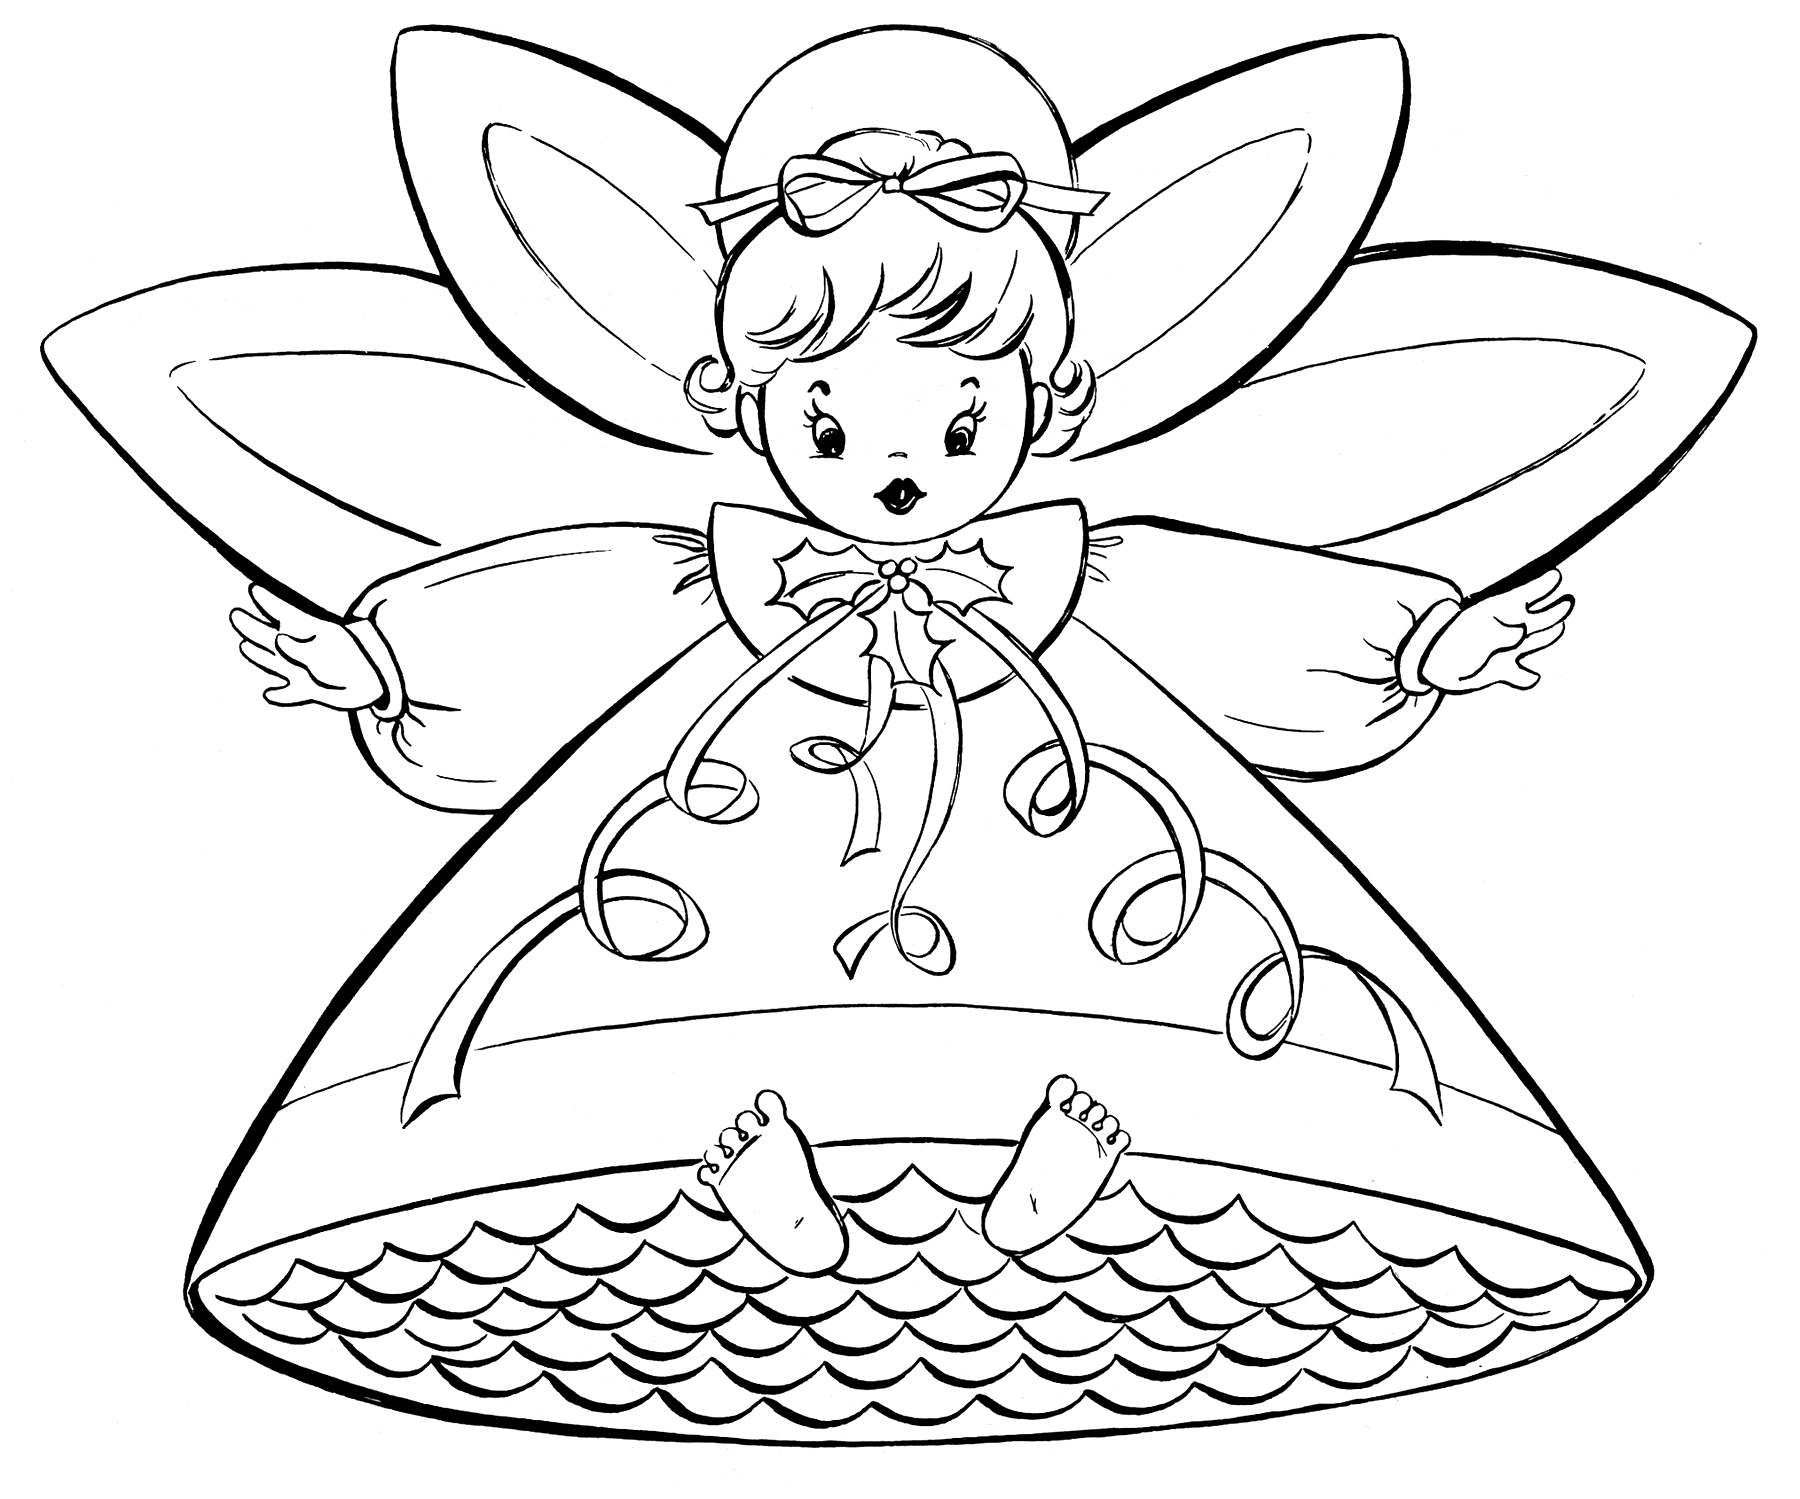 Christmas Coloring To Print With Free Pages Retro Angels The Graphics Fairy